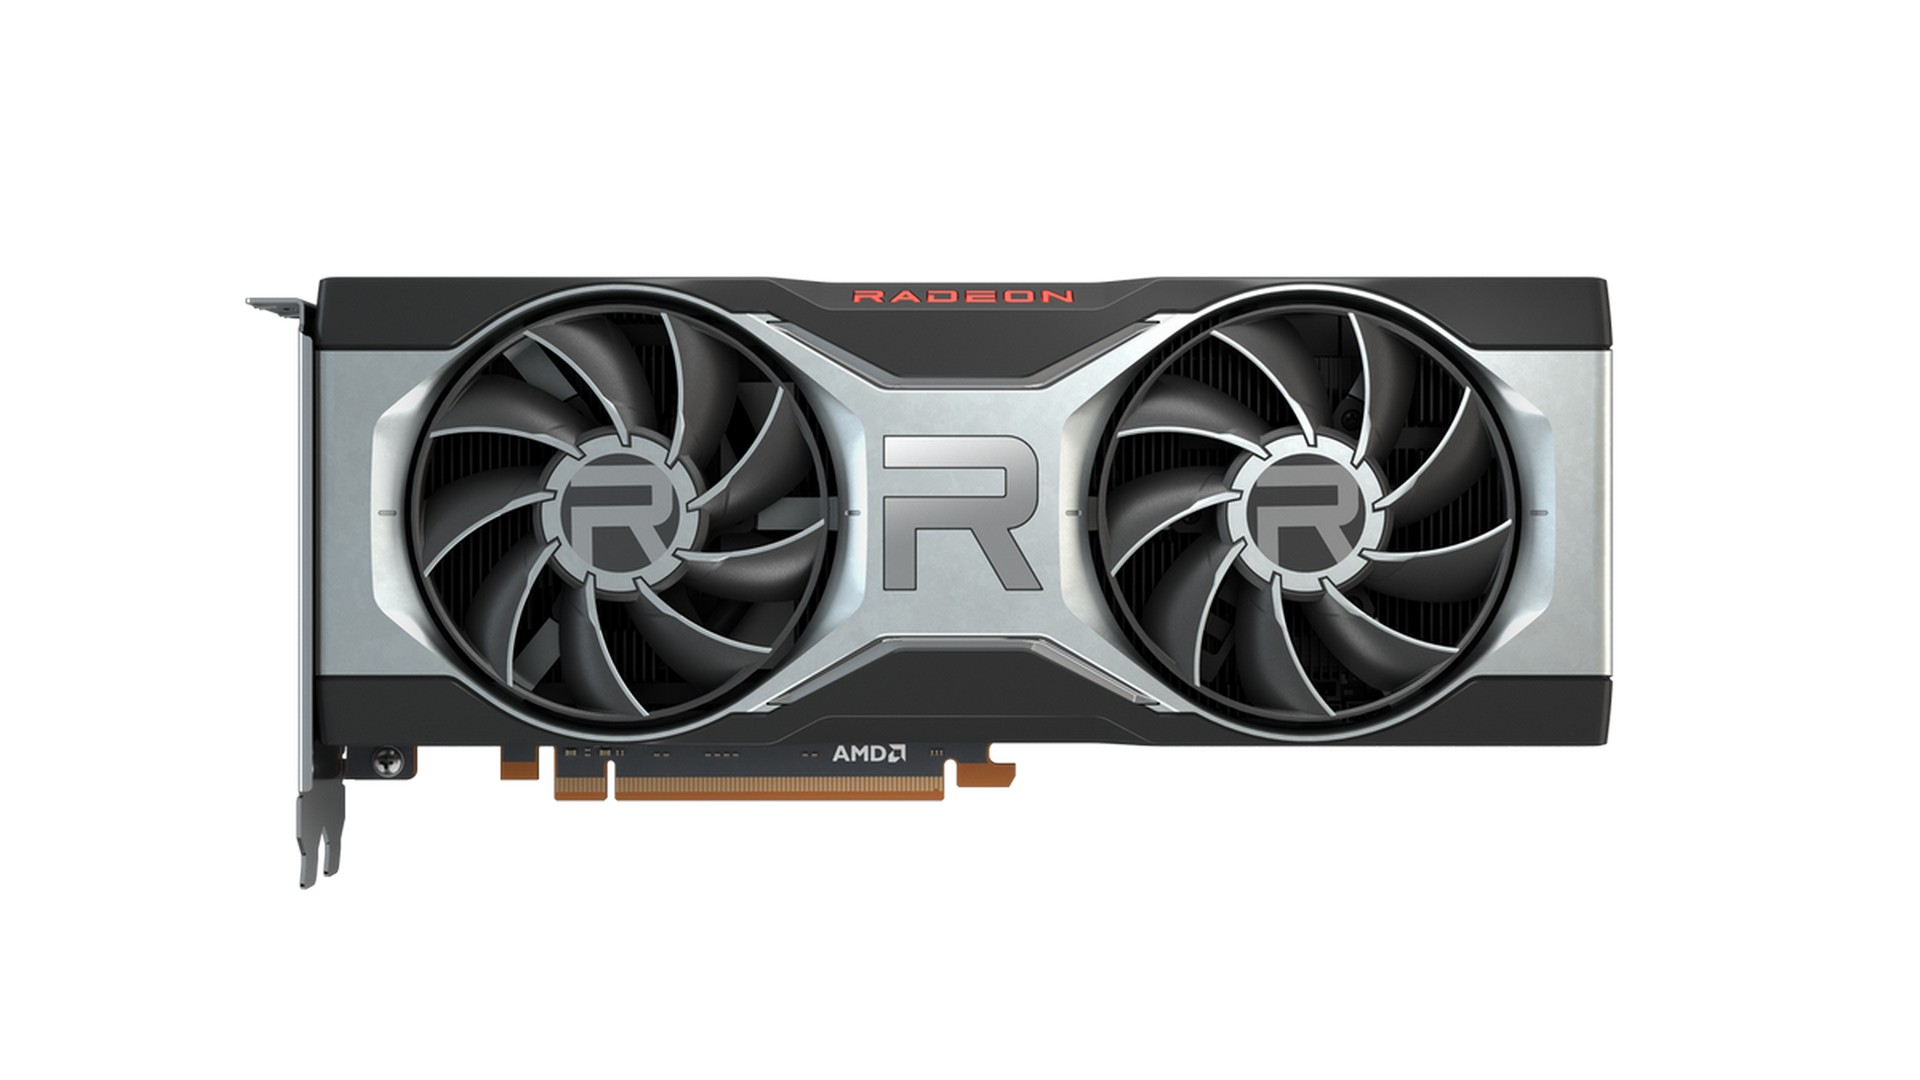 AMD Introduces The Radeon RX 6700 XT Graphics Card – A 1440p Gaming Powerhouse